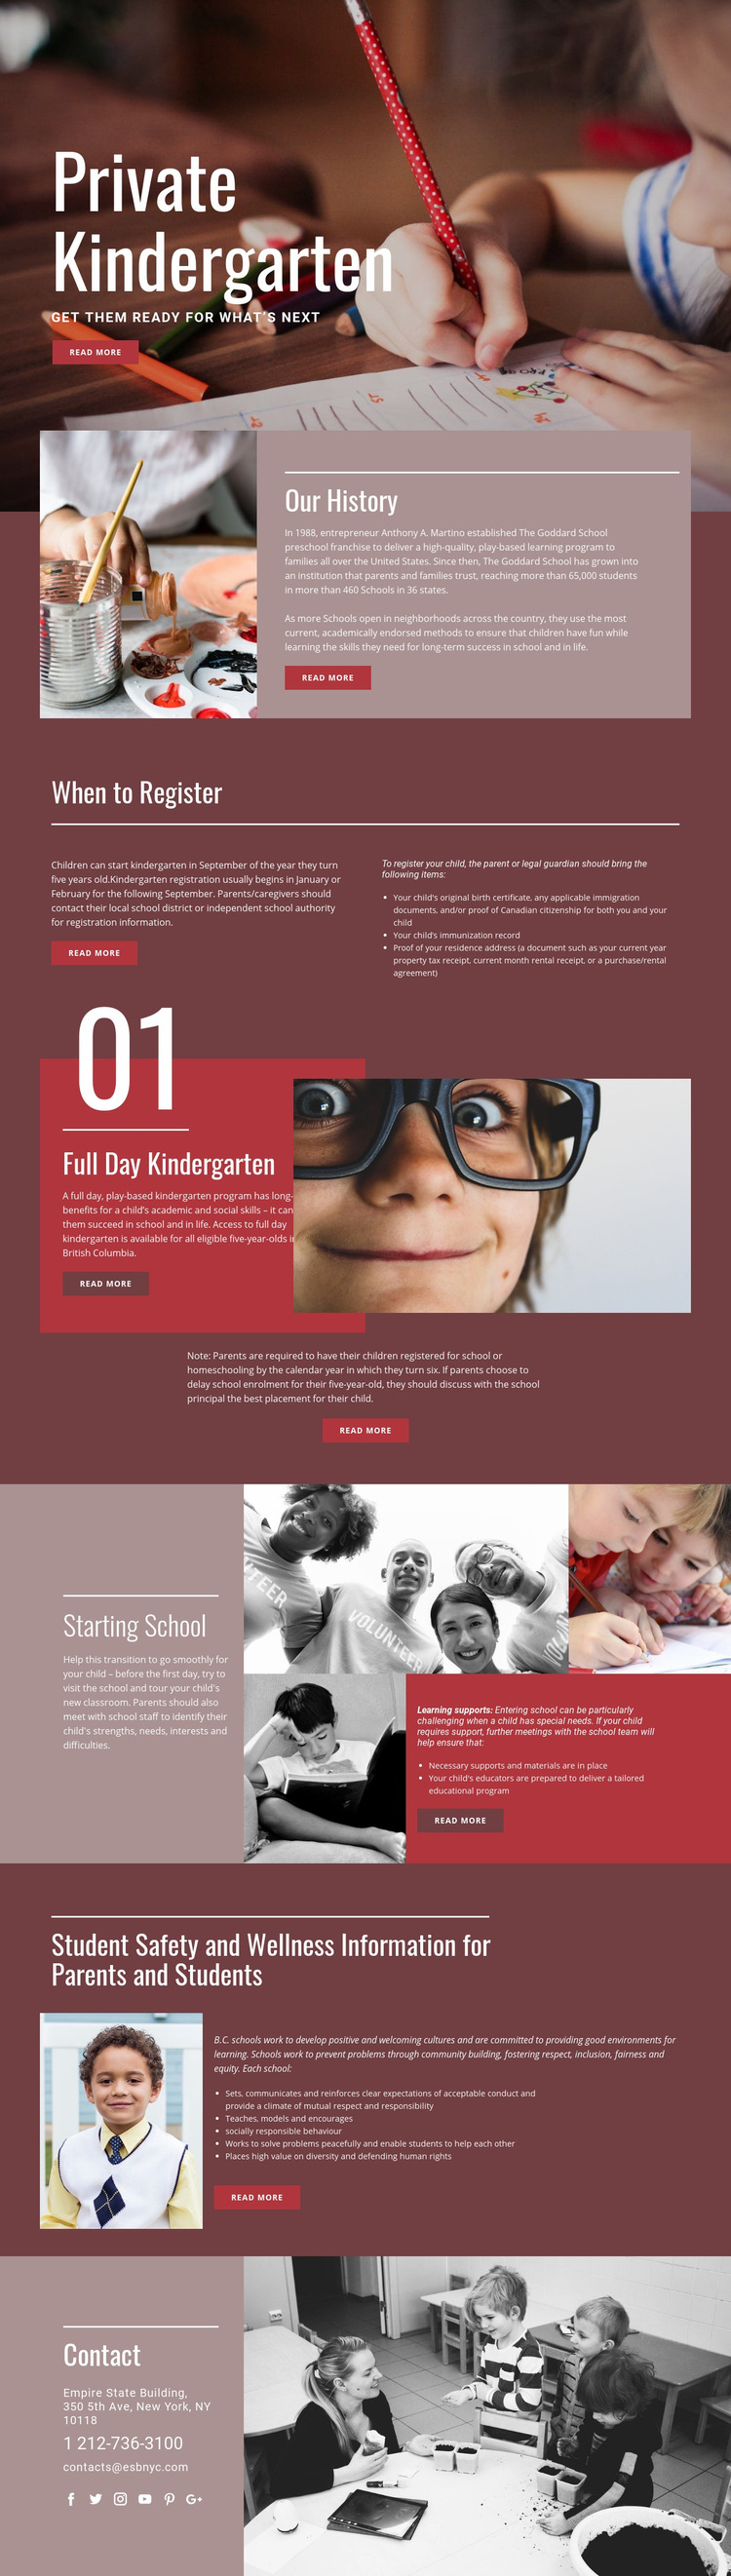 Private elementary education Web Page Design